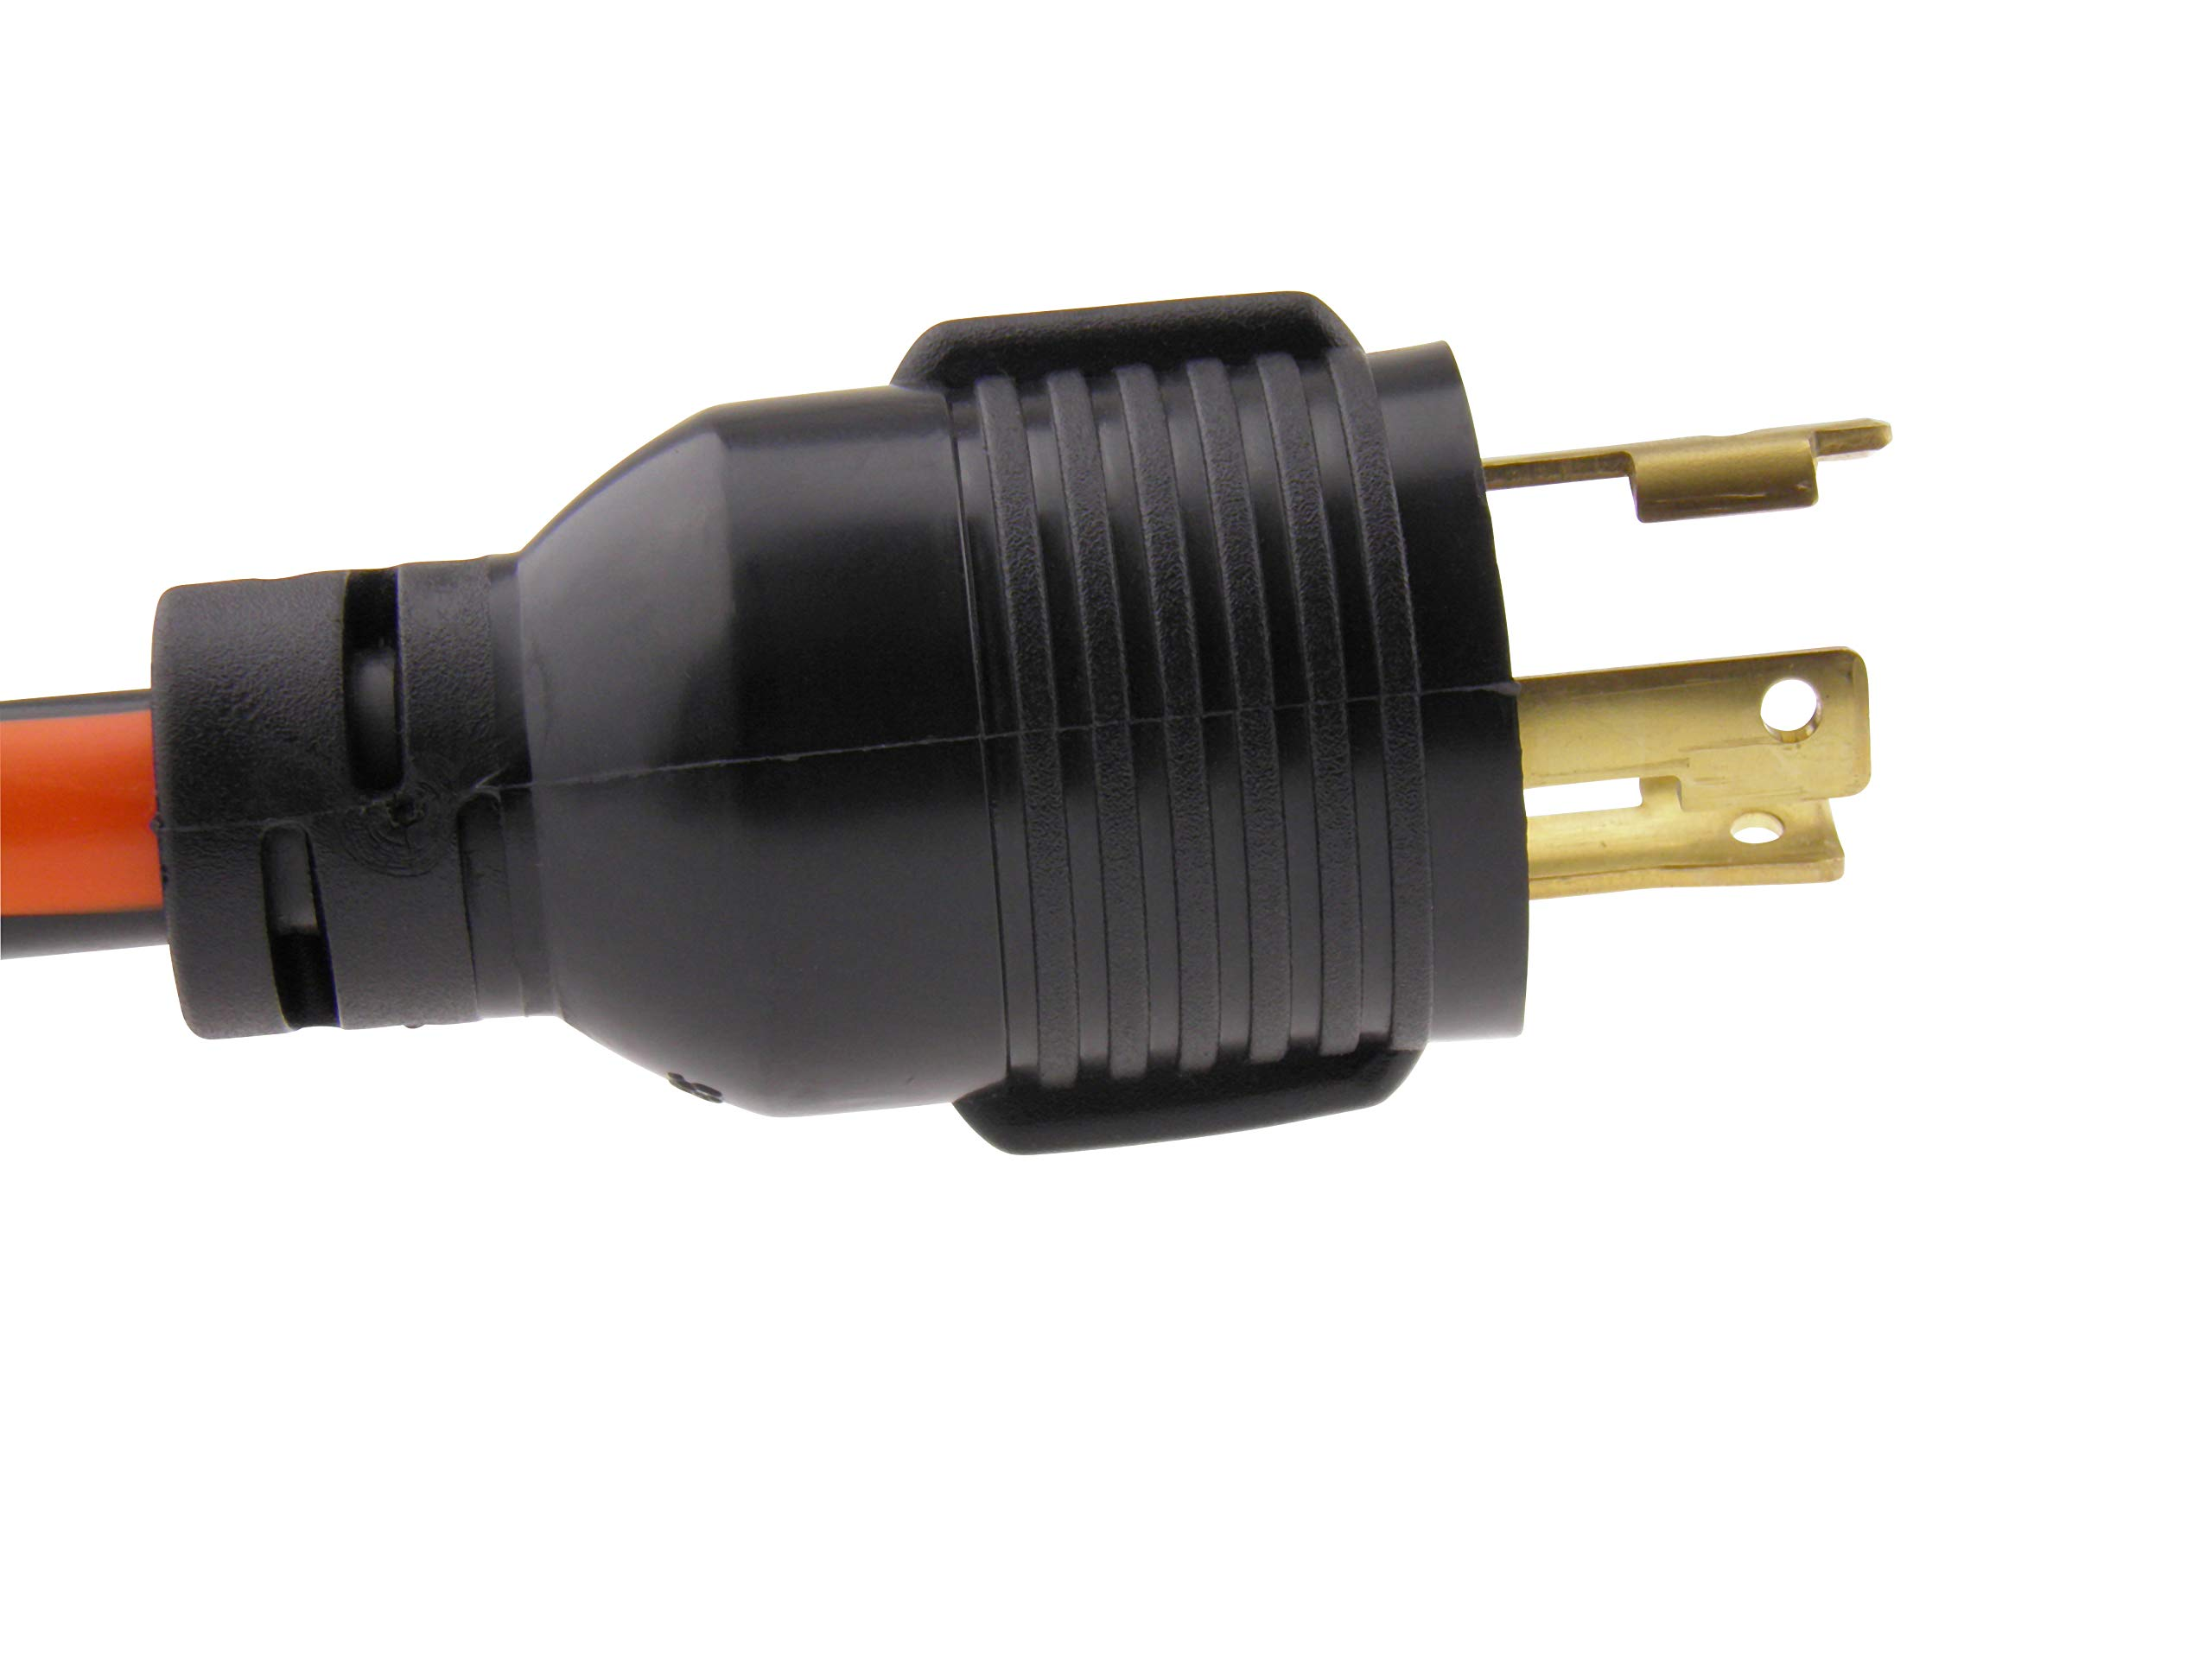 MPI Tools Nema L5-30 Generator Power Cord 3 Wire 10 Gauge 125v 30 Amp (Pigtail Adapter L5-30P to 5-15R) by MPI Tools (Image #3)